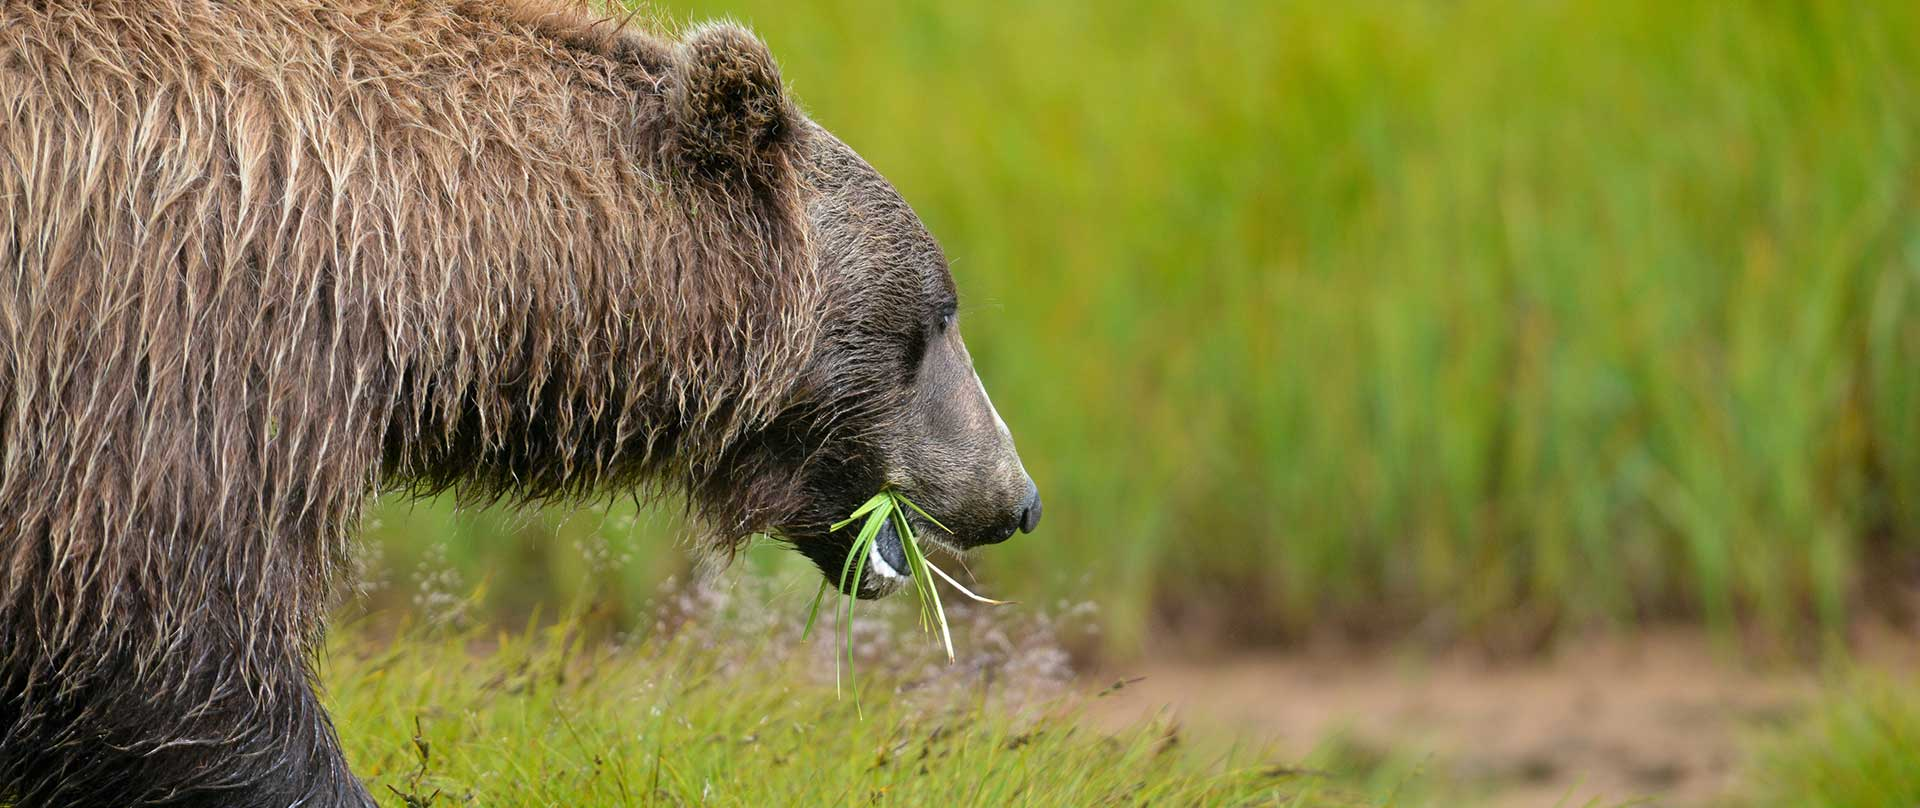 Controlling Bear Baiting in Grizzly Habitat